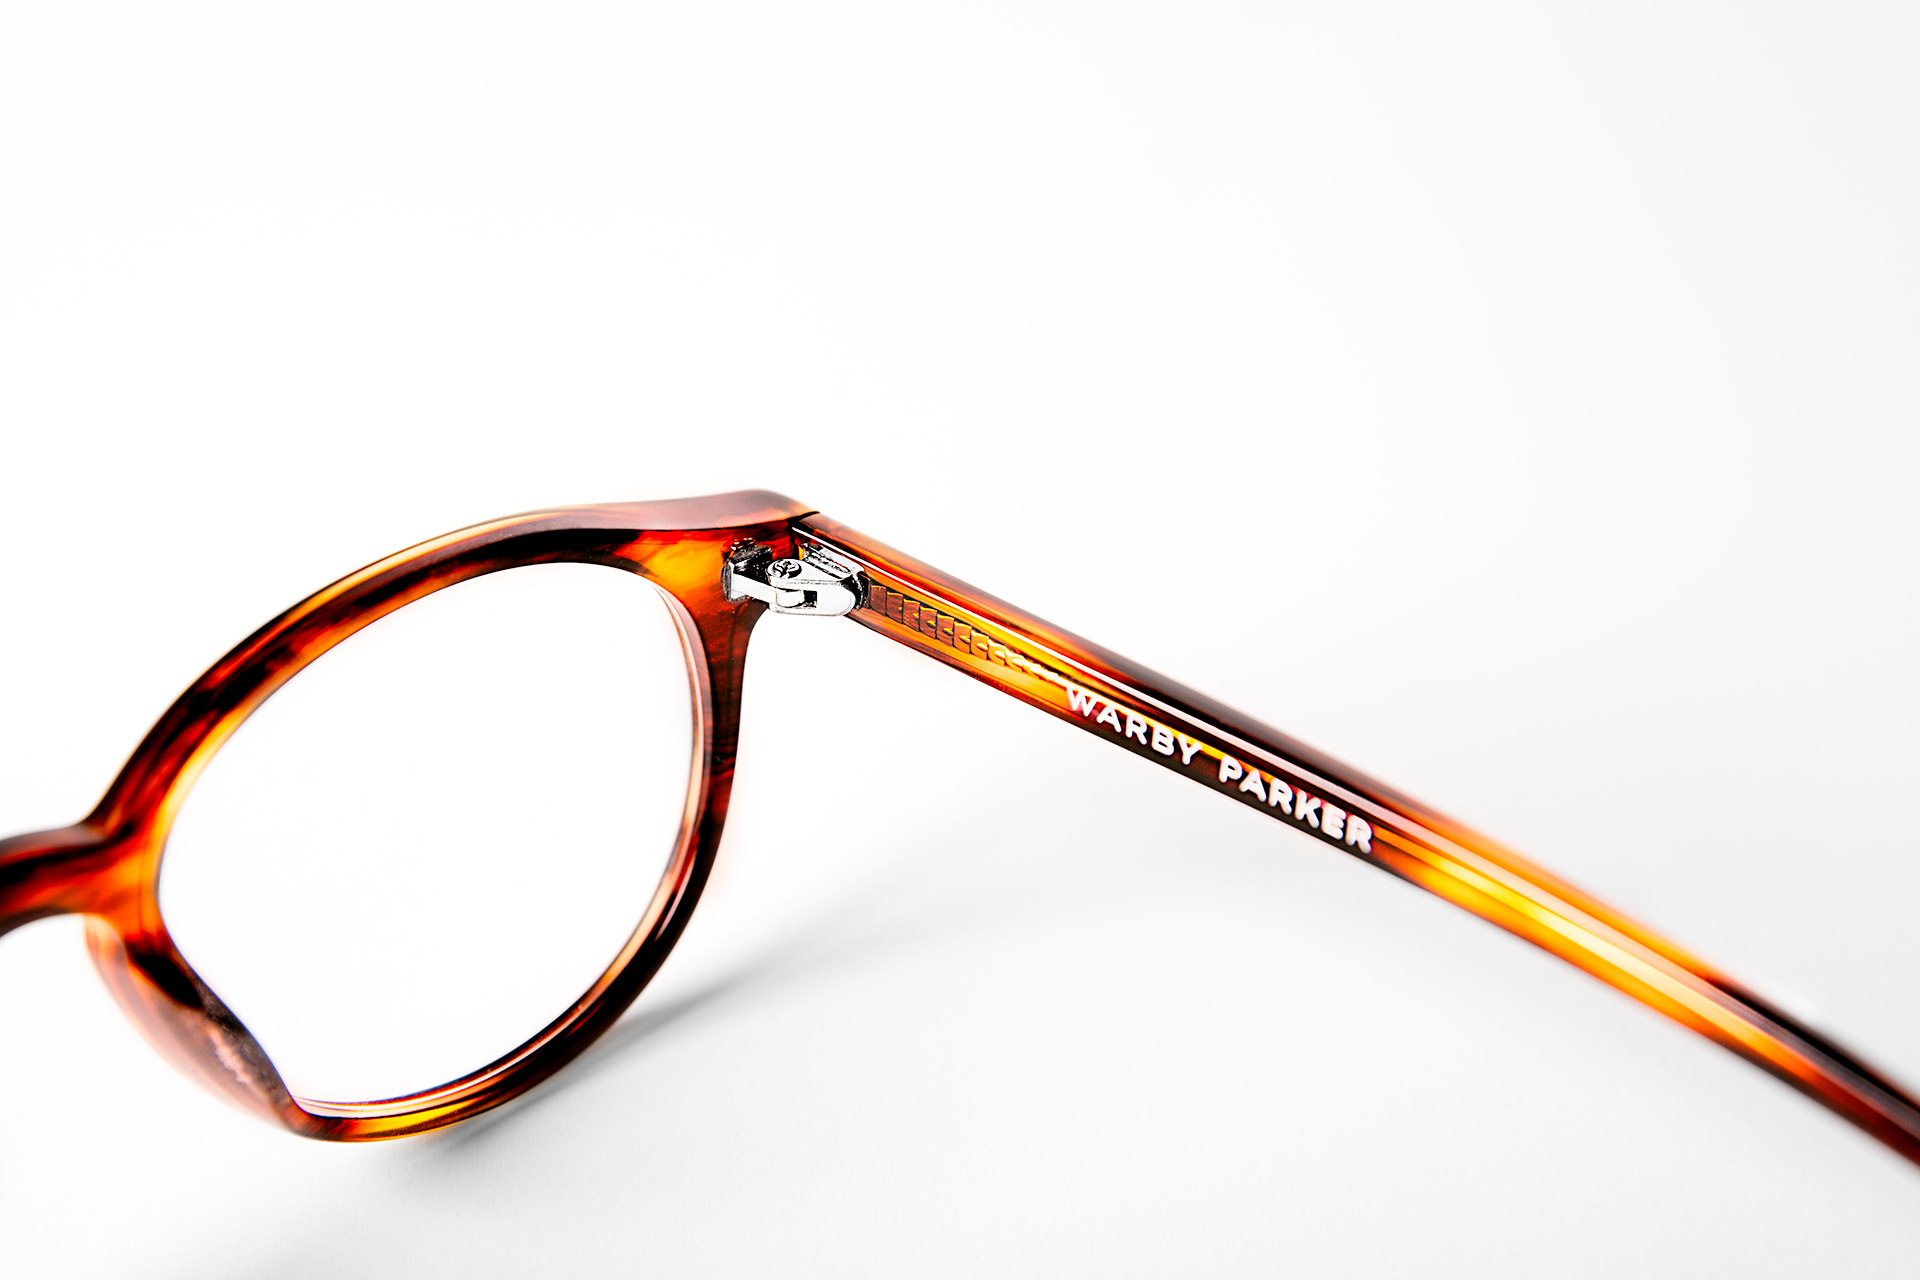 Warby-Parker_product_0215_Test_R1-D1-15